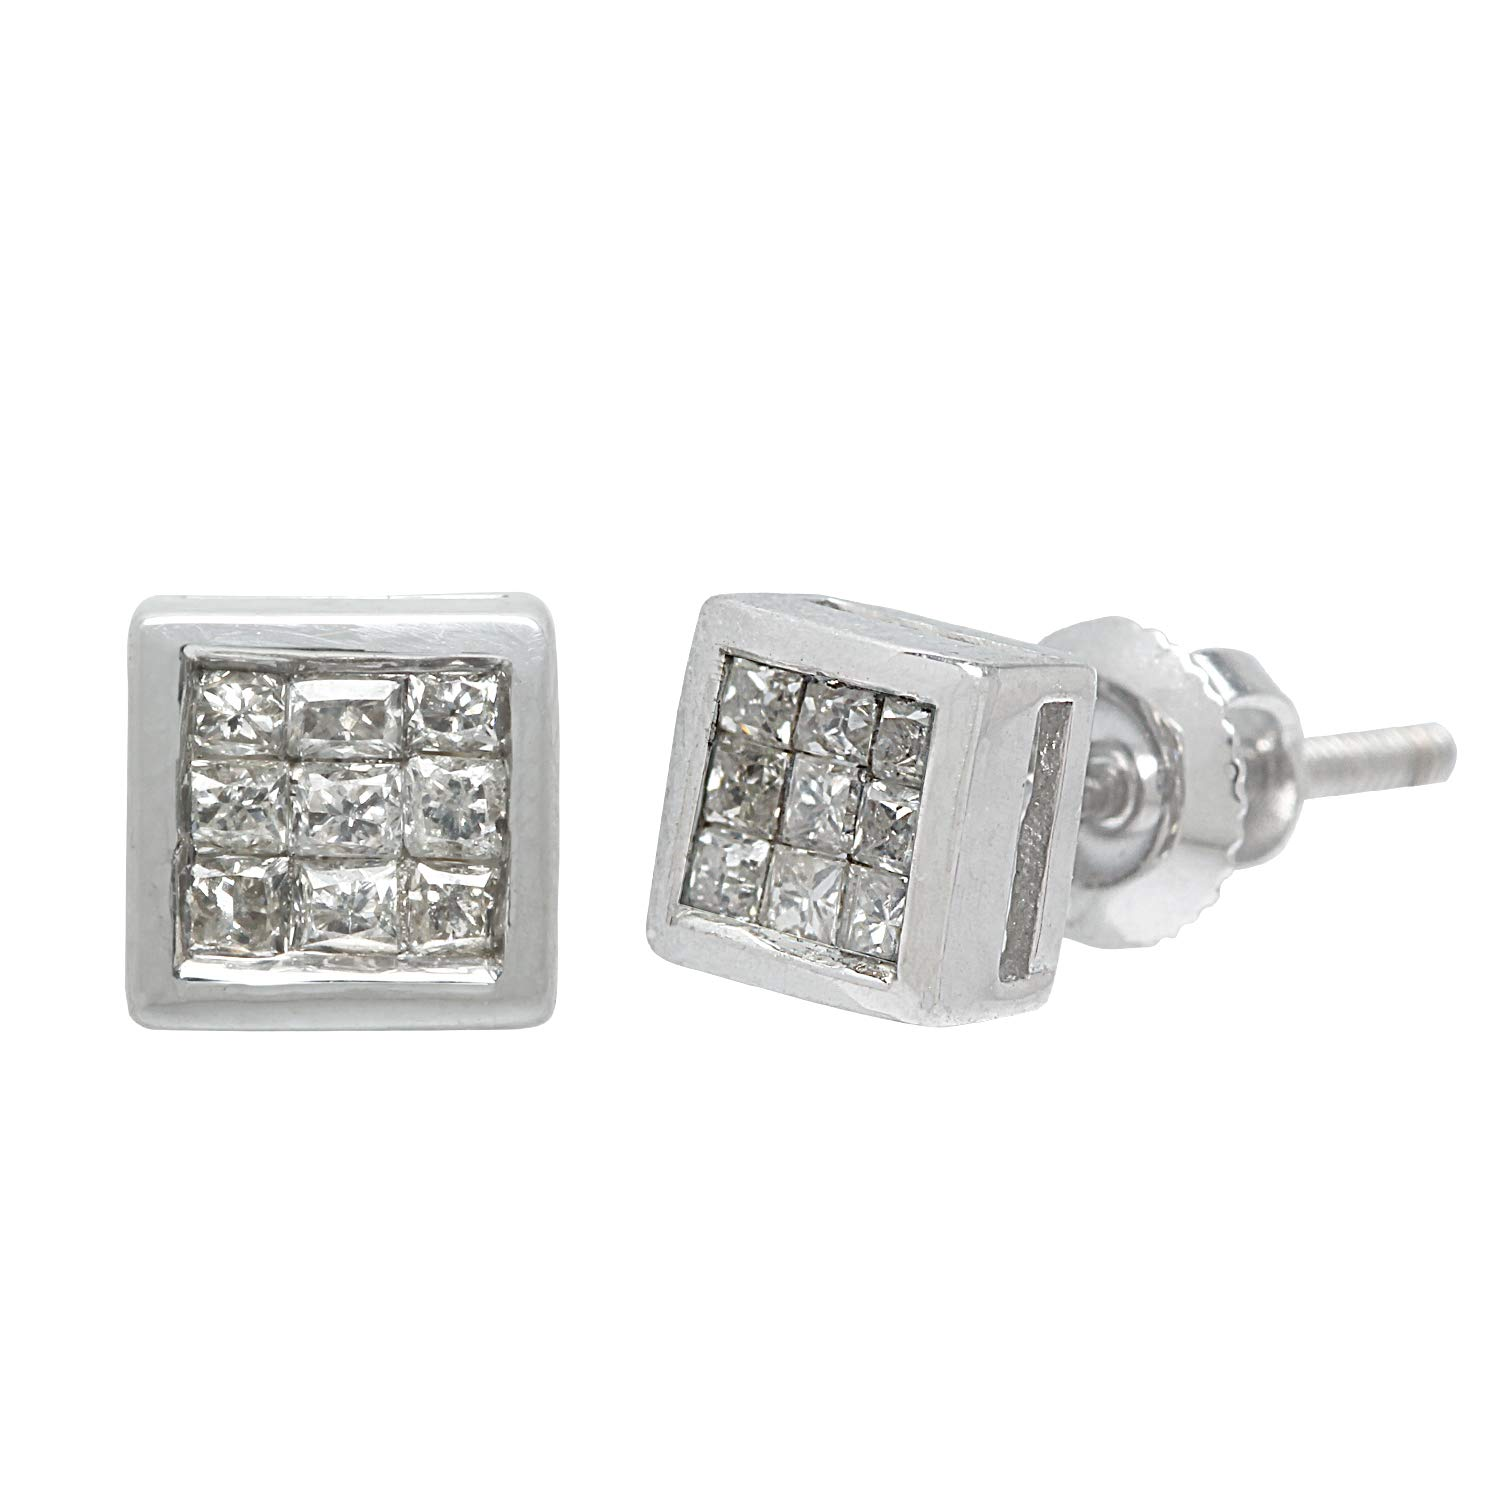 G-H Color, SI Clarity, 4 MM Ornaatis 0.19 Cttw Princess Cut White Natural Diamond Stud Earrings 14K Solid White Gold